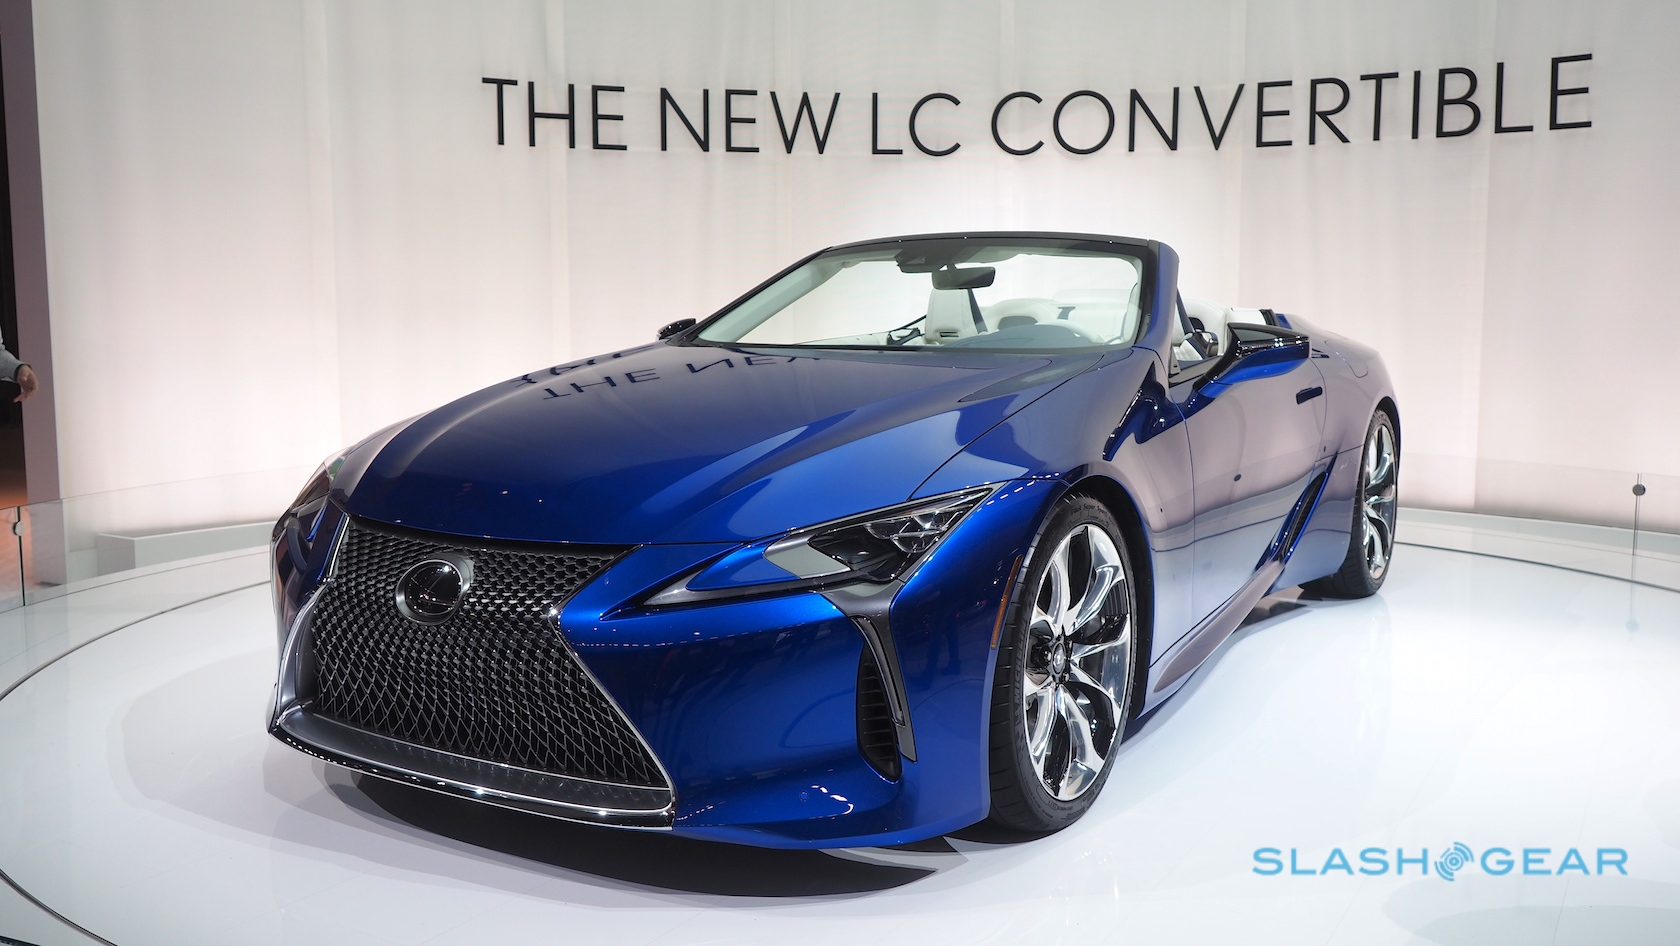 Four Door Convertible >> The Lexus LC 500 Convertible is more stunning than we dared hope - SlashGear